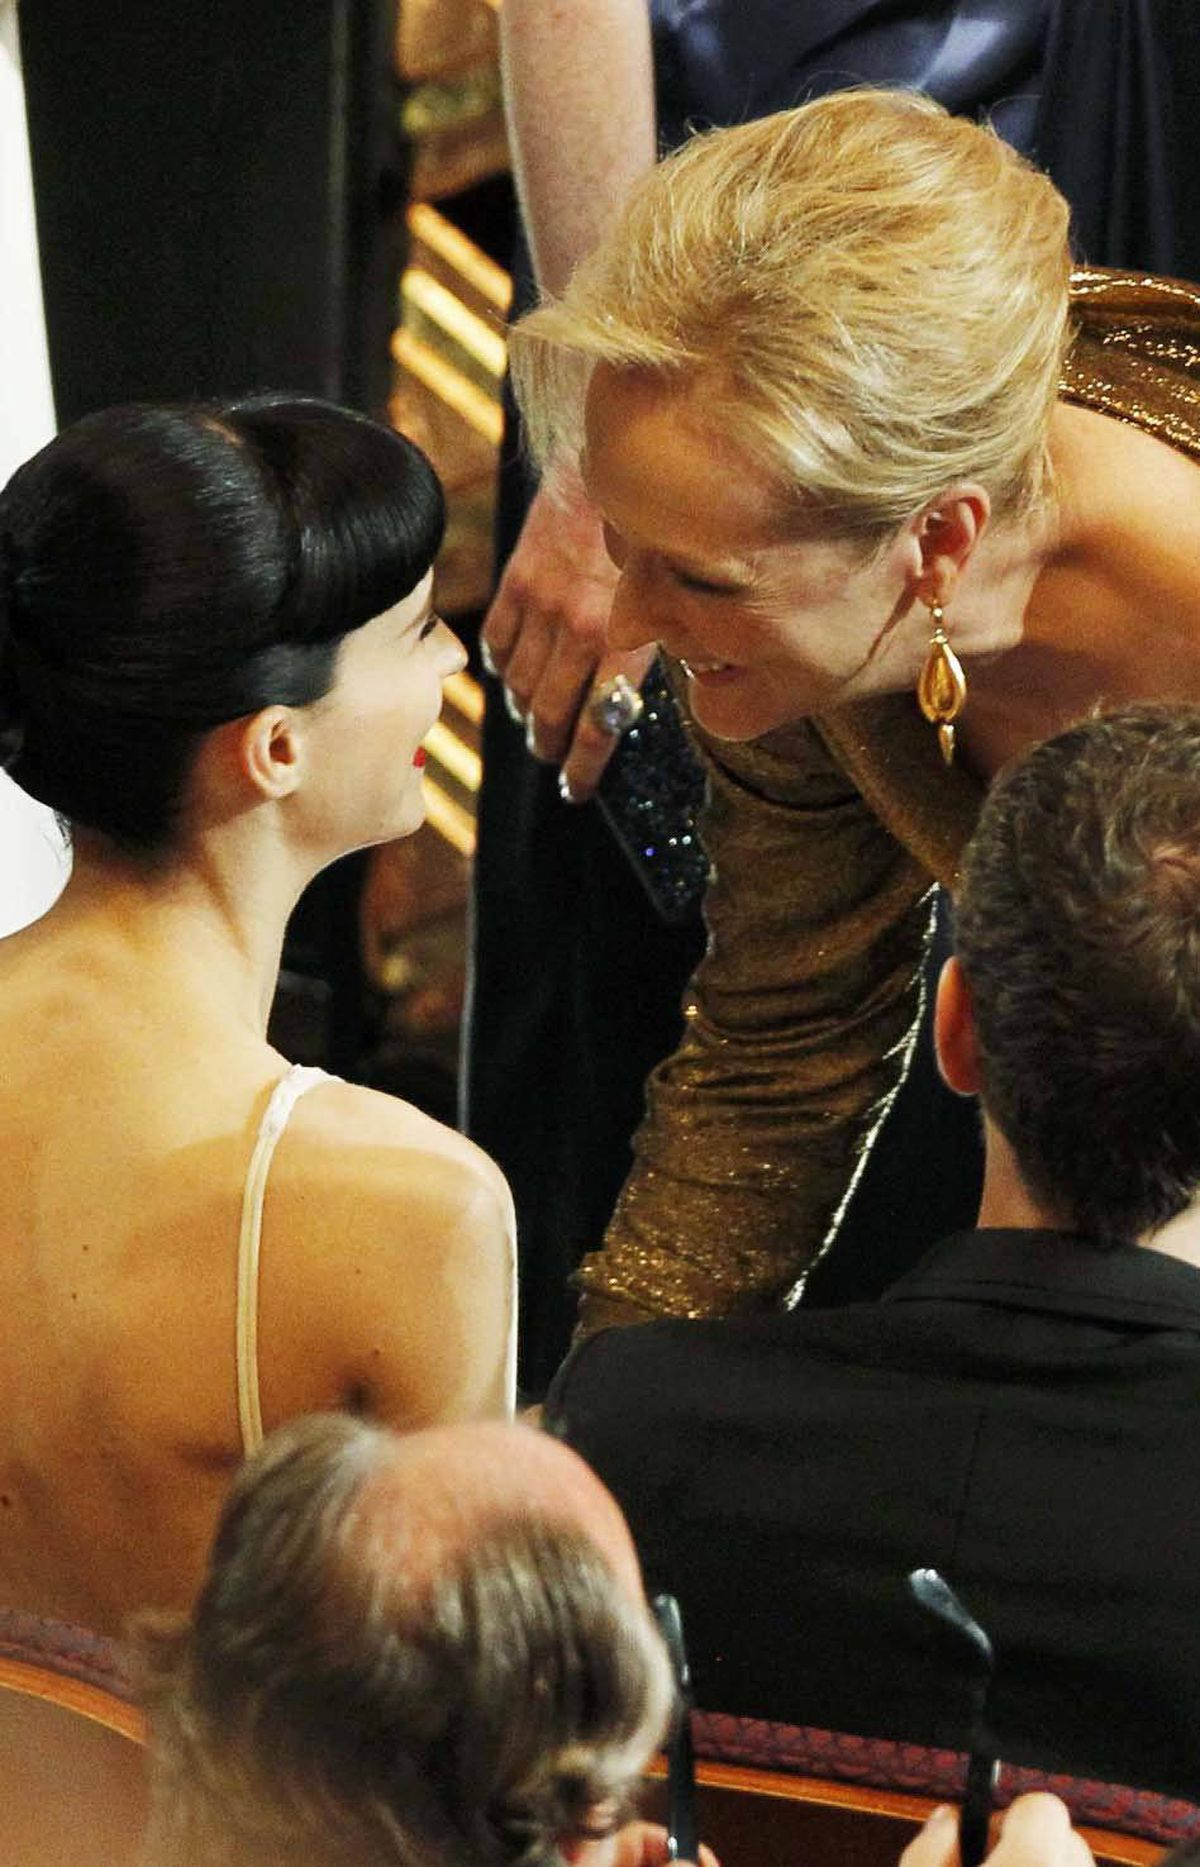 Best actress nominees Meryl Streep (right) and Rooney Mara threaten to kill each other at the Academy Awards on Sunday.